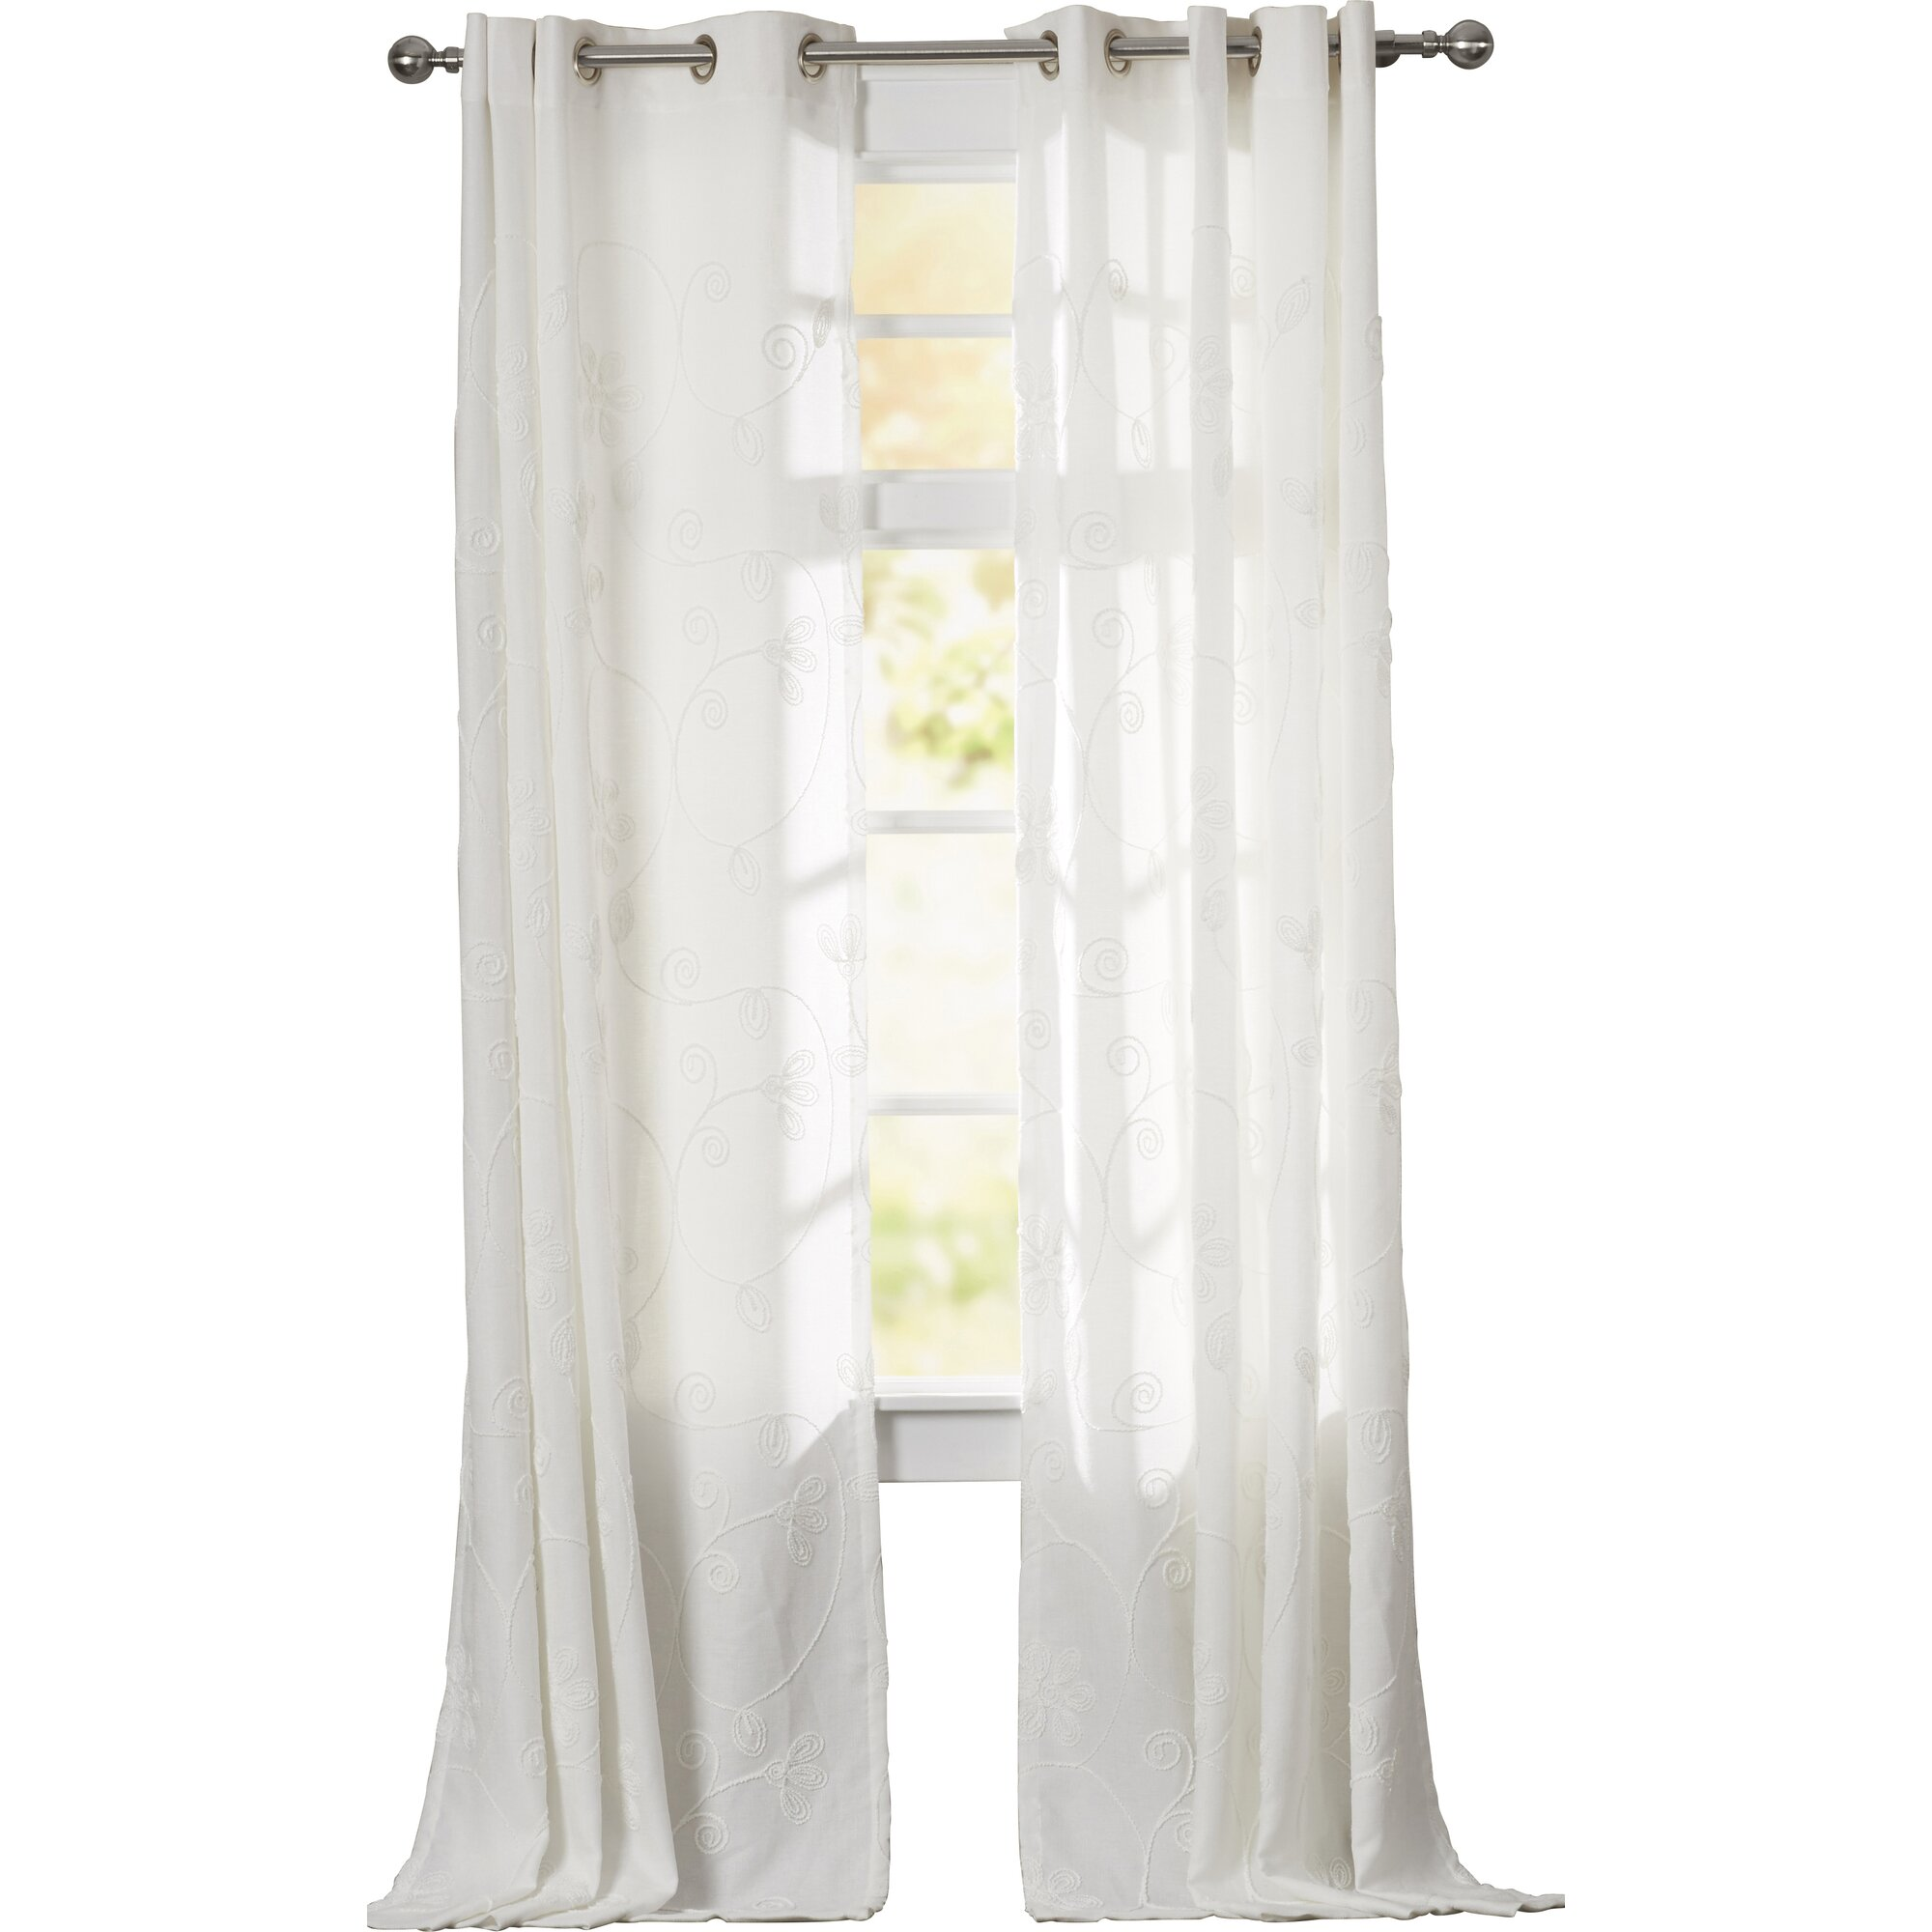 Threshold linen grommet sheer curtain panel product details page - Necaise Nature Floral Semi Sheer Grommet Single Curtain Panel